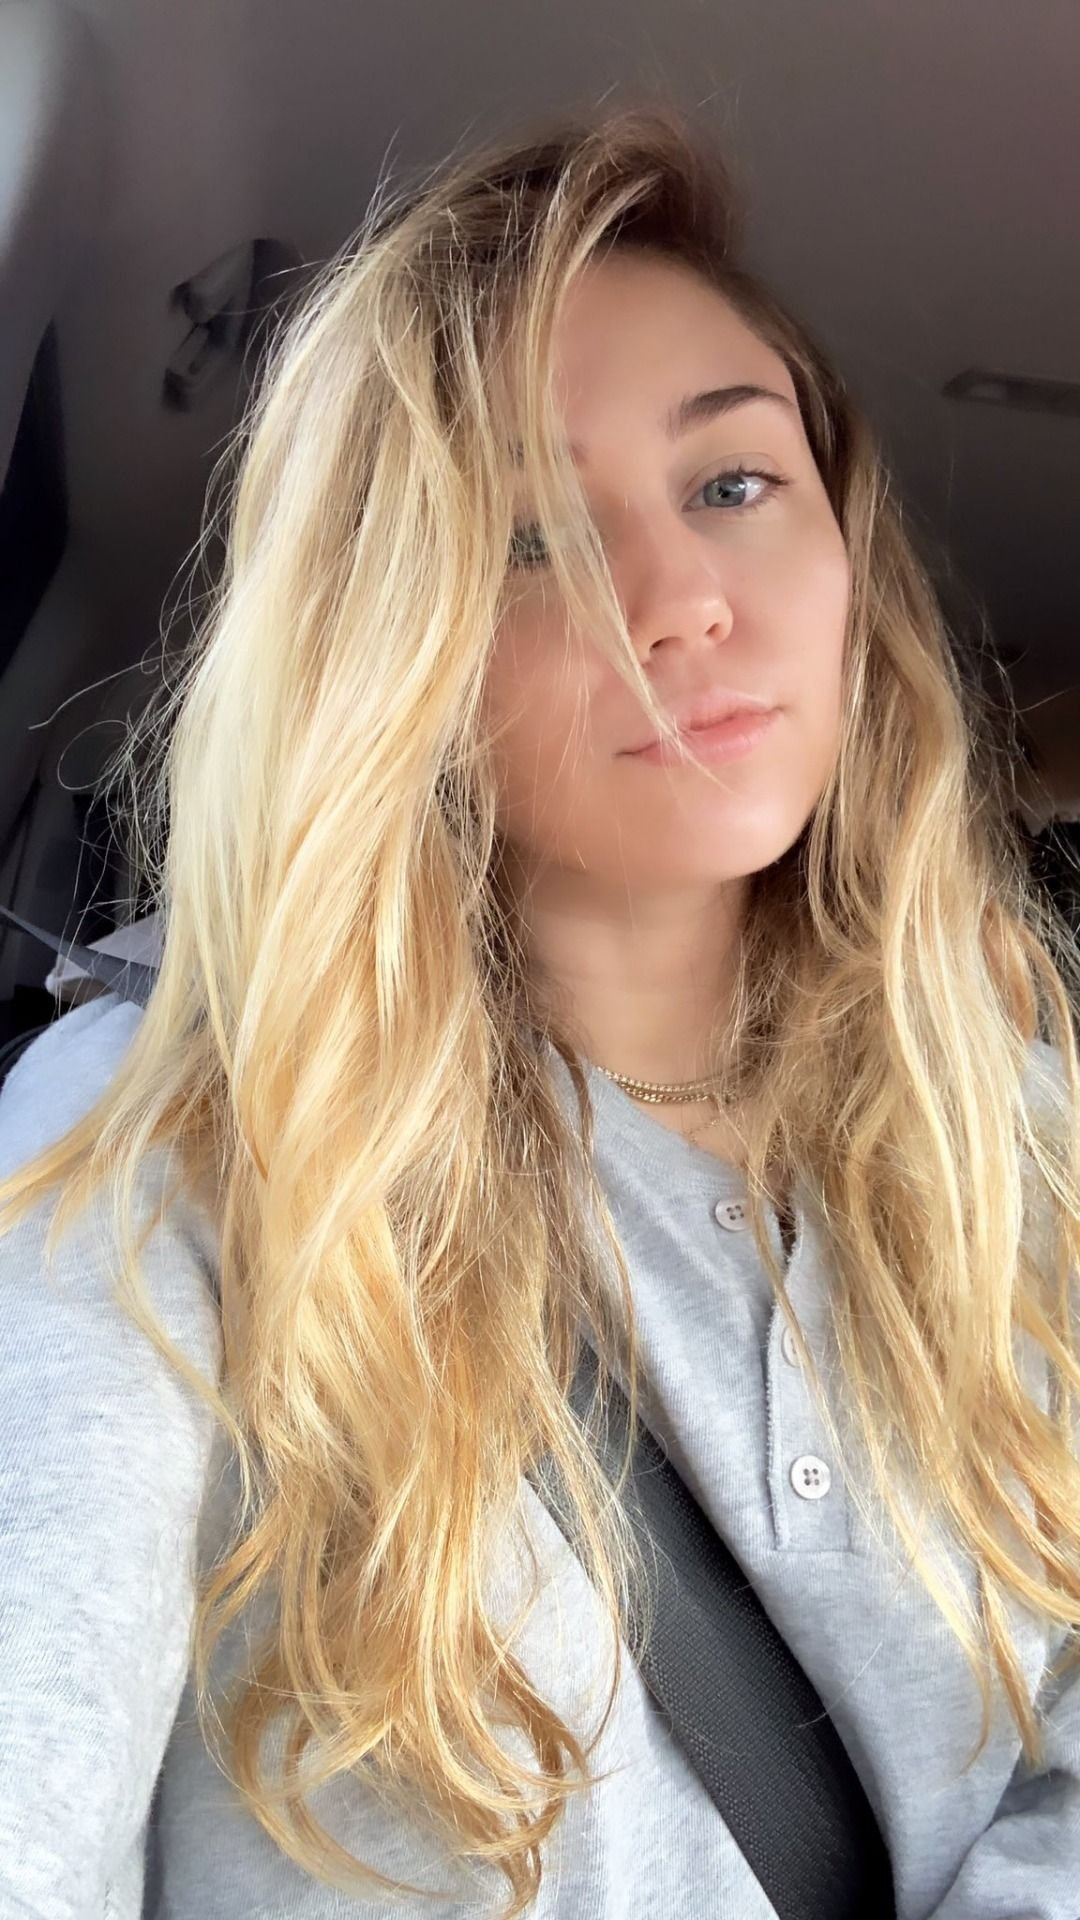 The Best Miley Cyrus Daily Miley ️ In 2019 Miley Cyrus Hair Miley Cyrus Selena Gomez Miley Cyrus Pictures